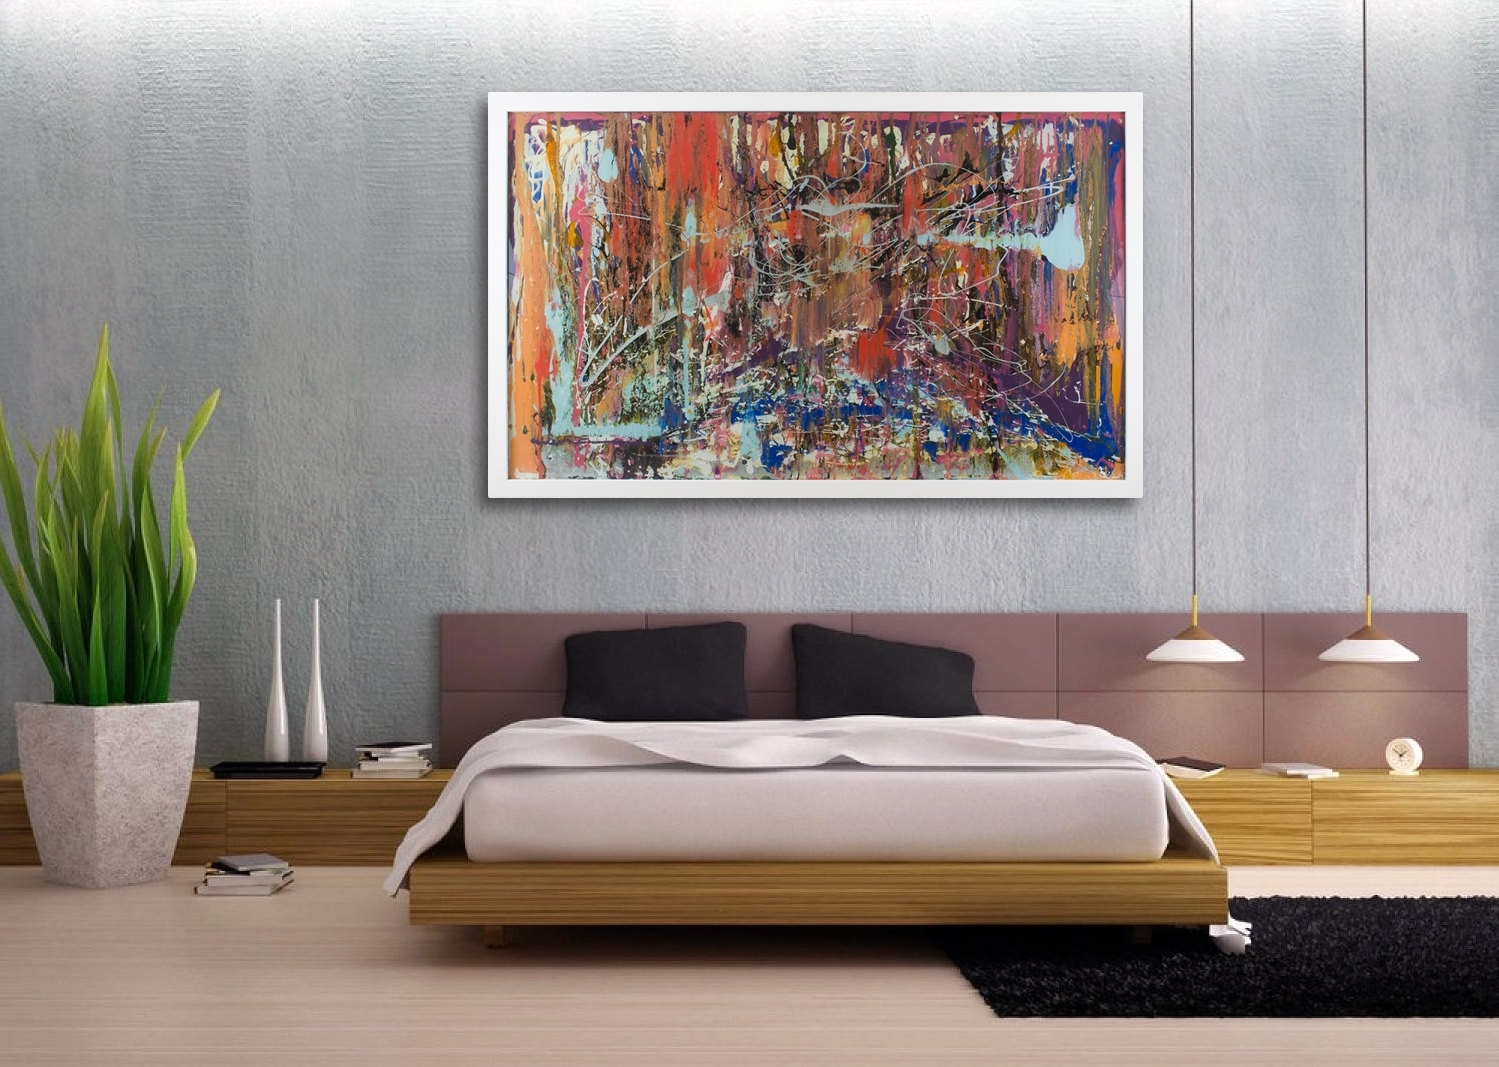 Expensive Large Canvas Wall Art Bedroom — Joanne Russo Homesjoanne Throughout Most Up To Date Etsy Wall Accents (View 4 of 15)